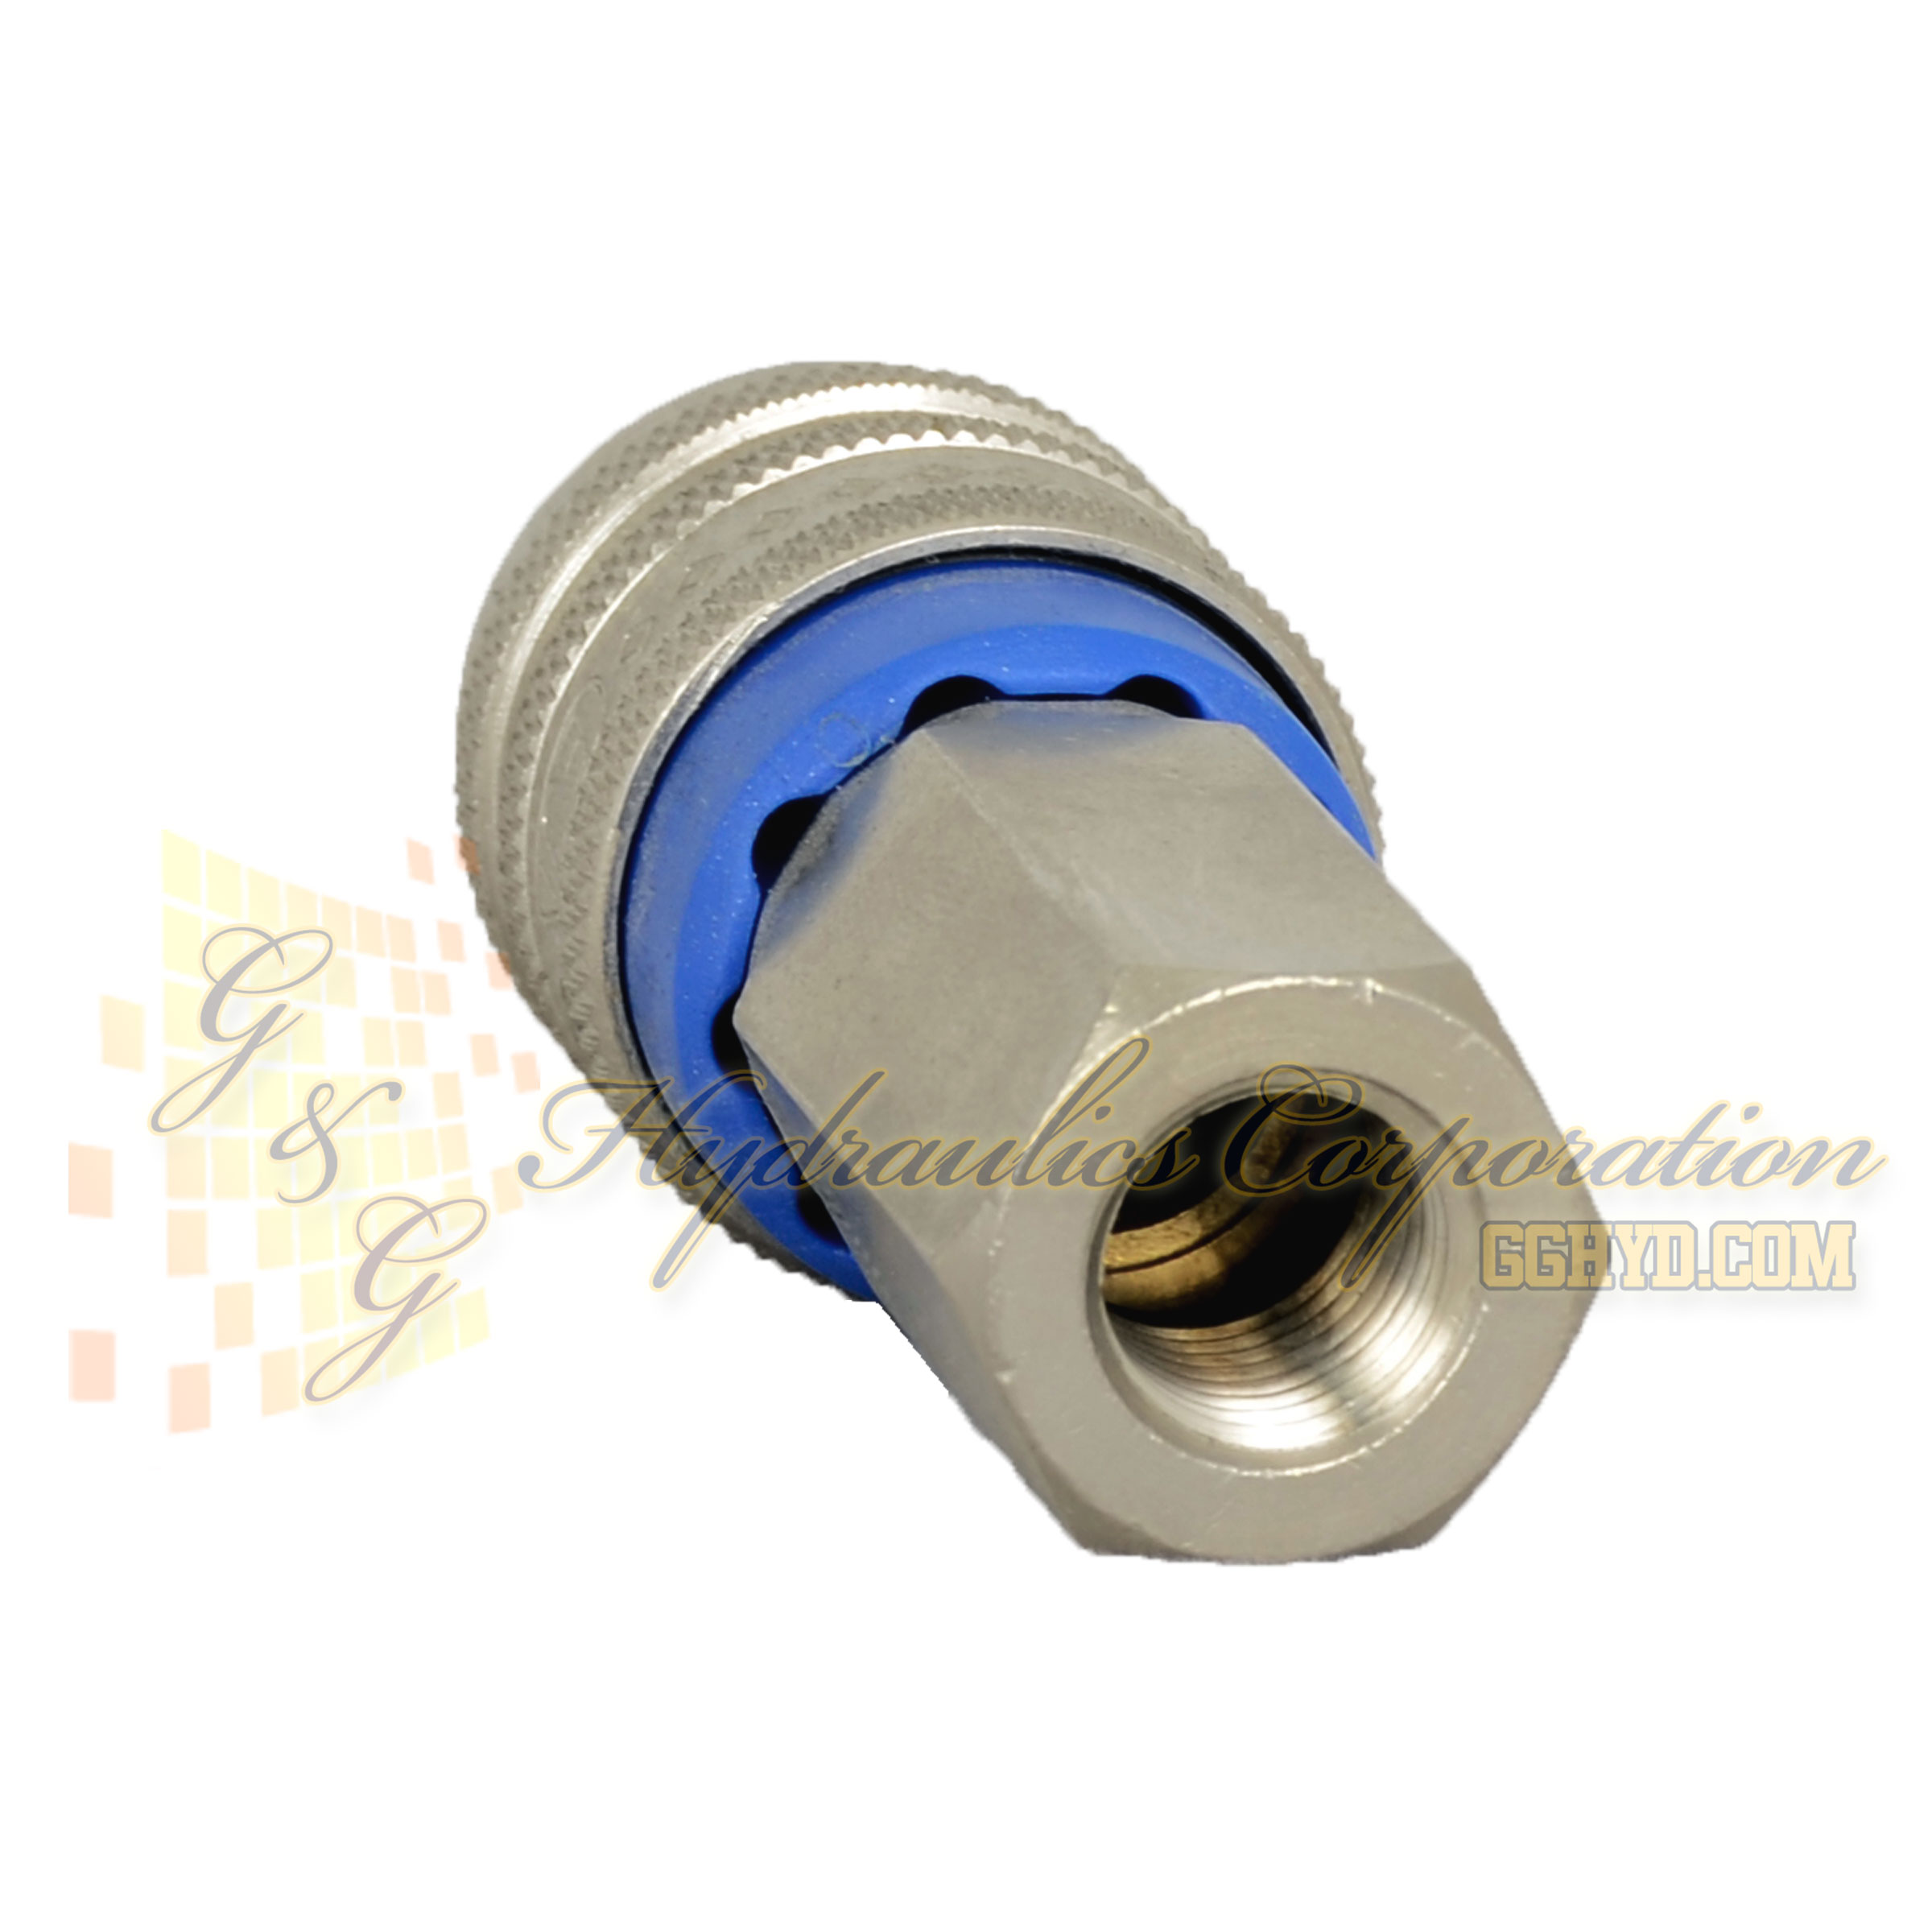 "10-310-3402 CEJN Quick Disconnect Coupler, 1/4"" NPT Female Threads, 232 PSI (16 bar)"